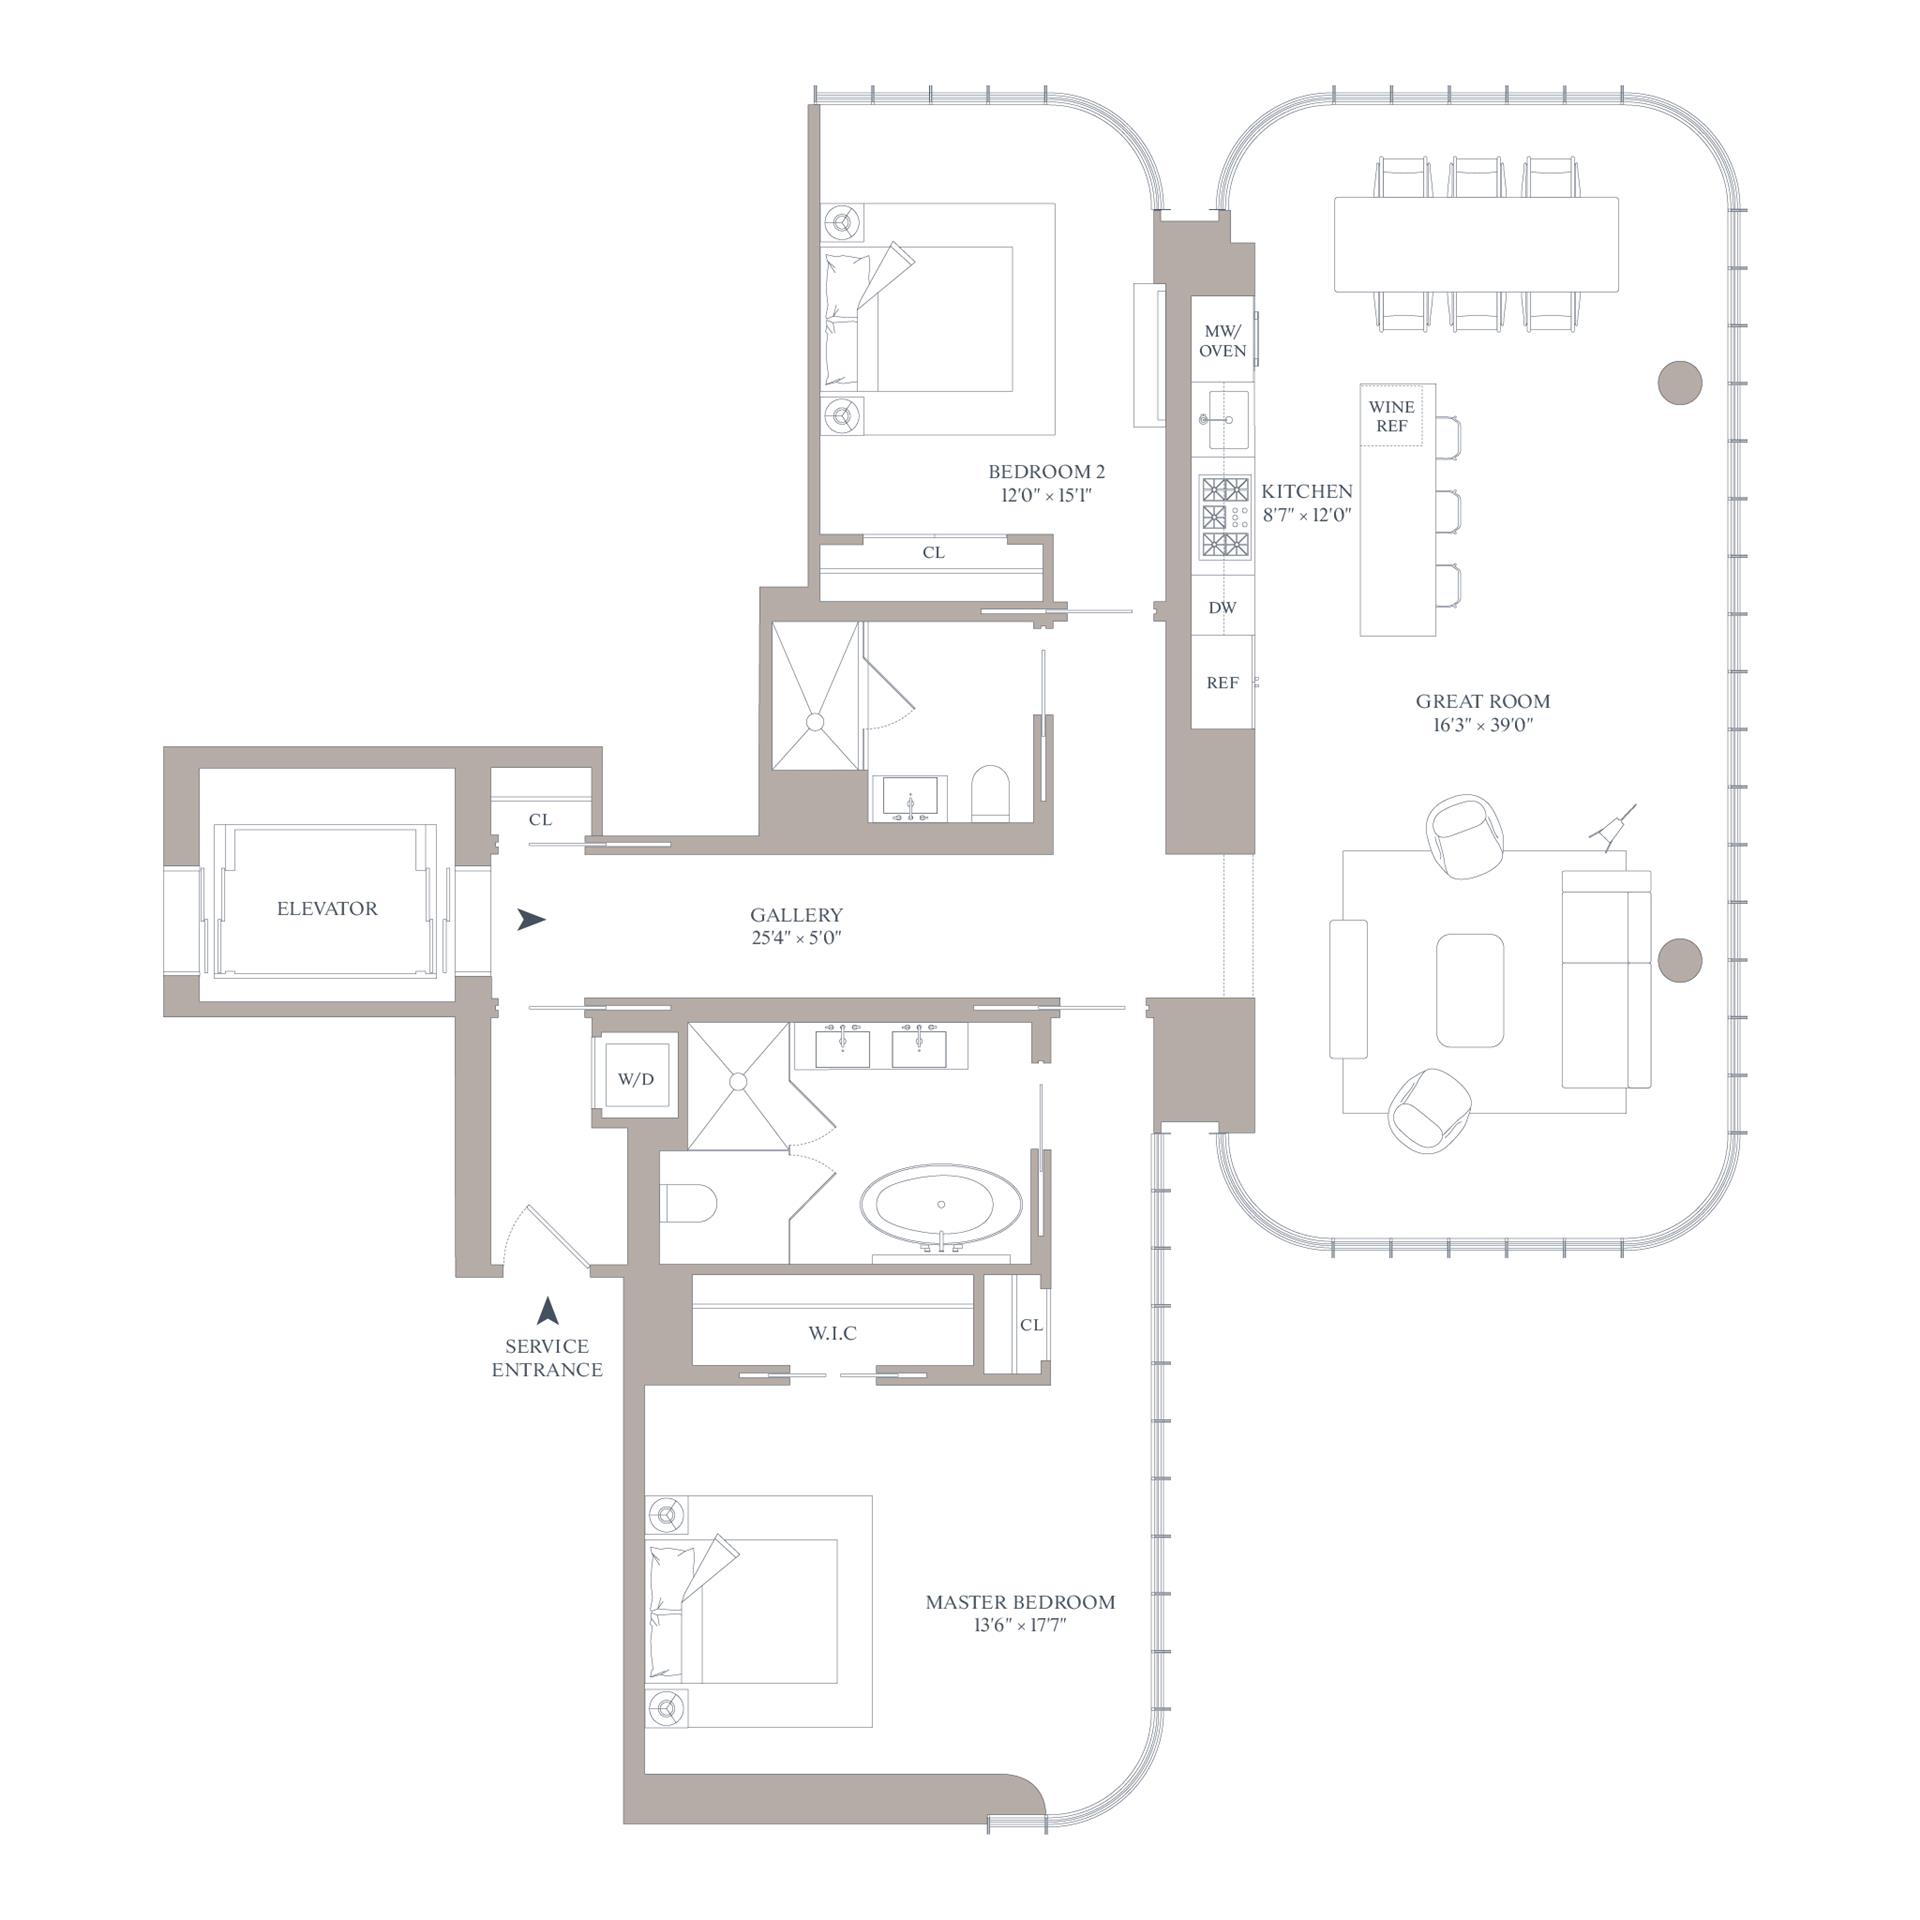 Floor plan of 565 Broome St, N22B - SoHo - Nolita, New York